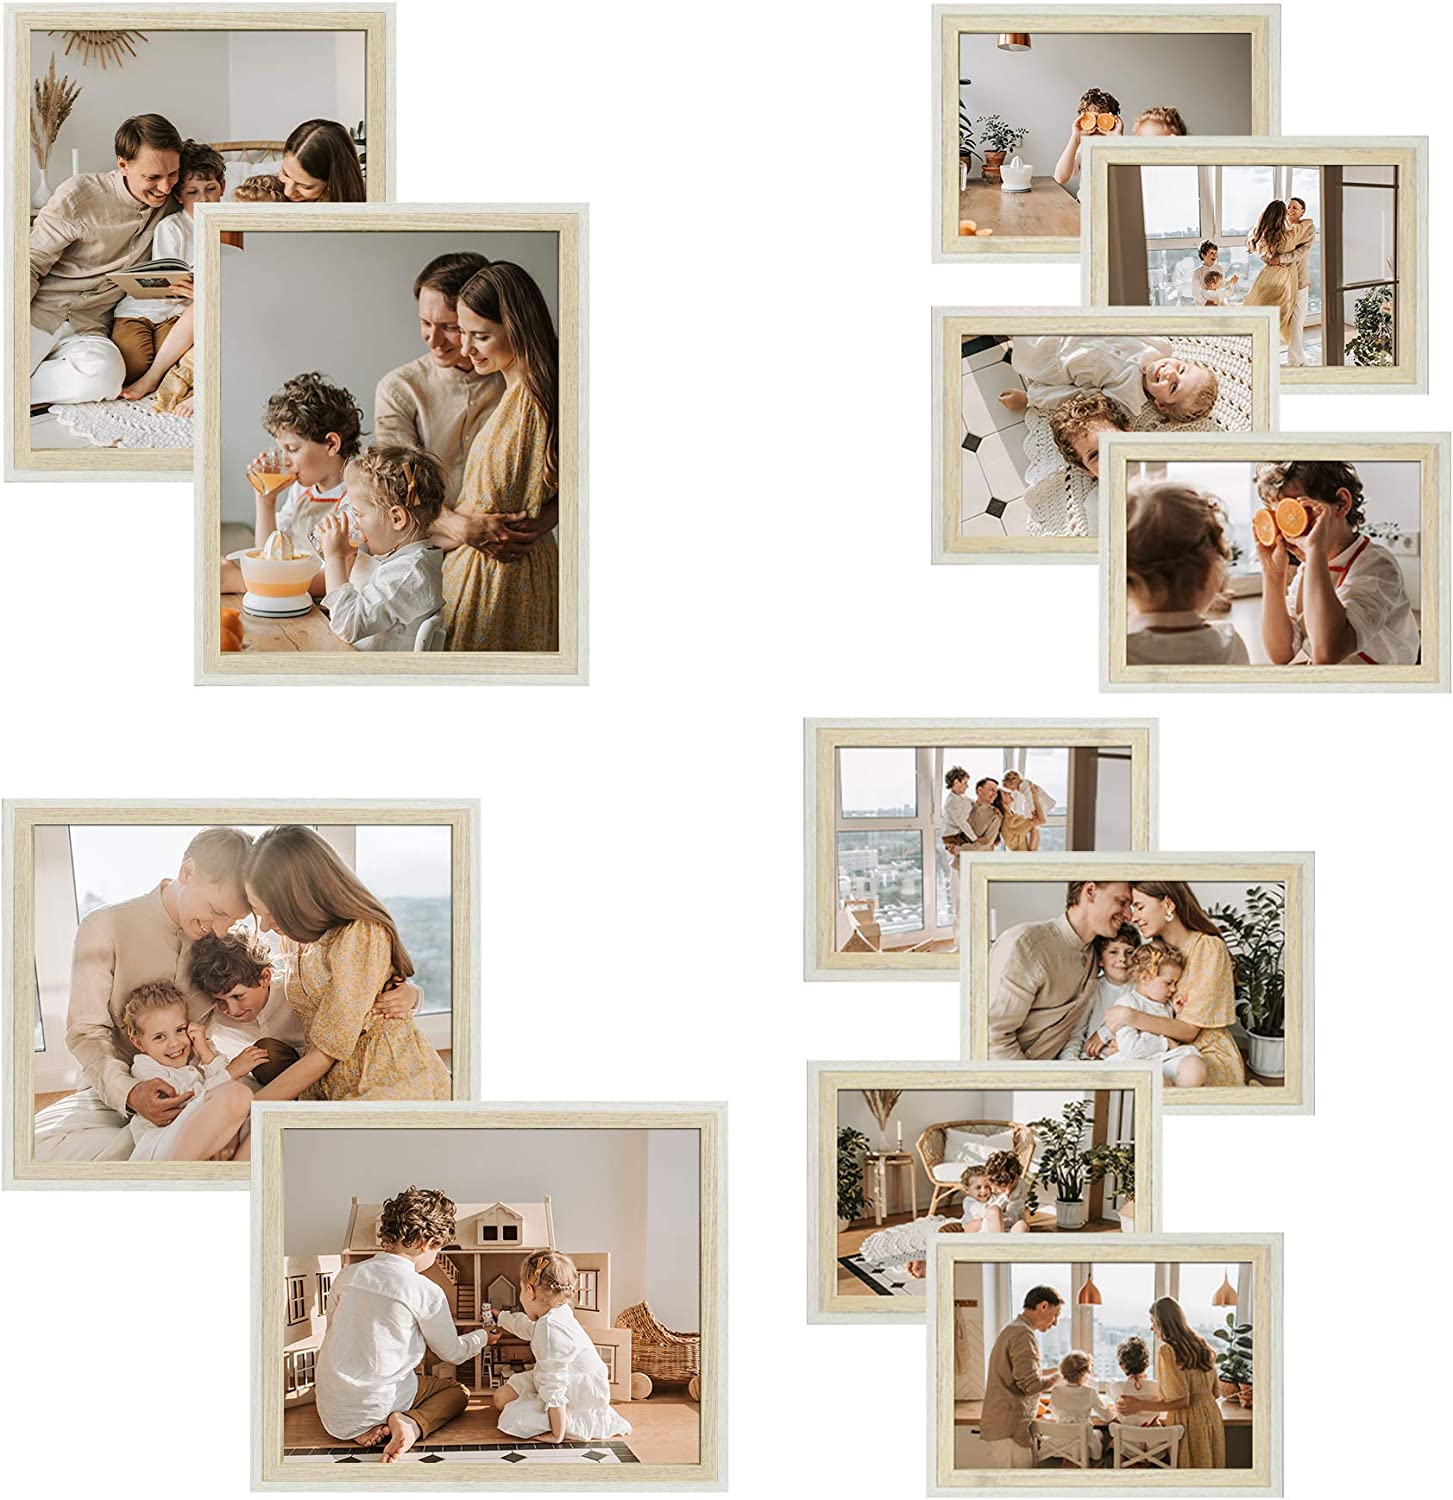 Golden State Art Two-Tone Collage Arlington Mall Photo Wall Set Gallery Max 90% OFF Frame